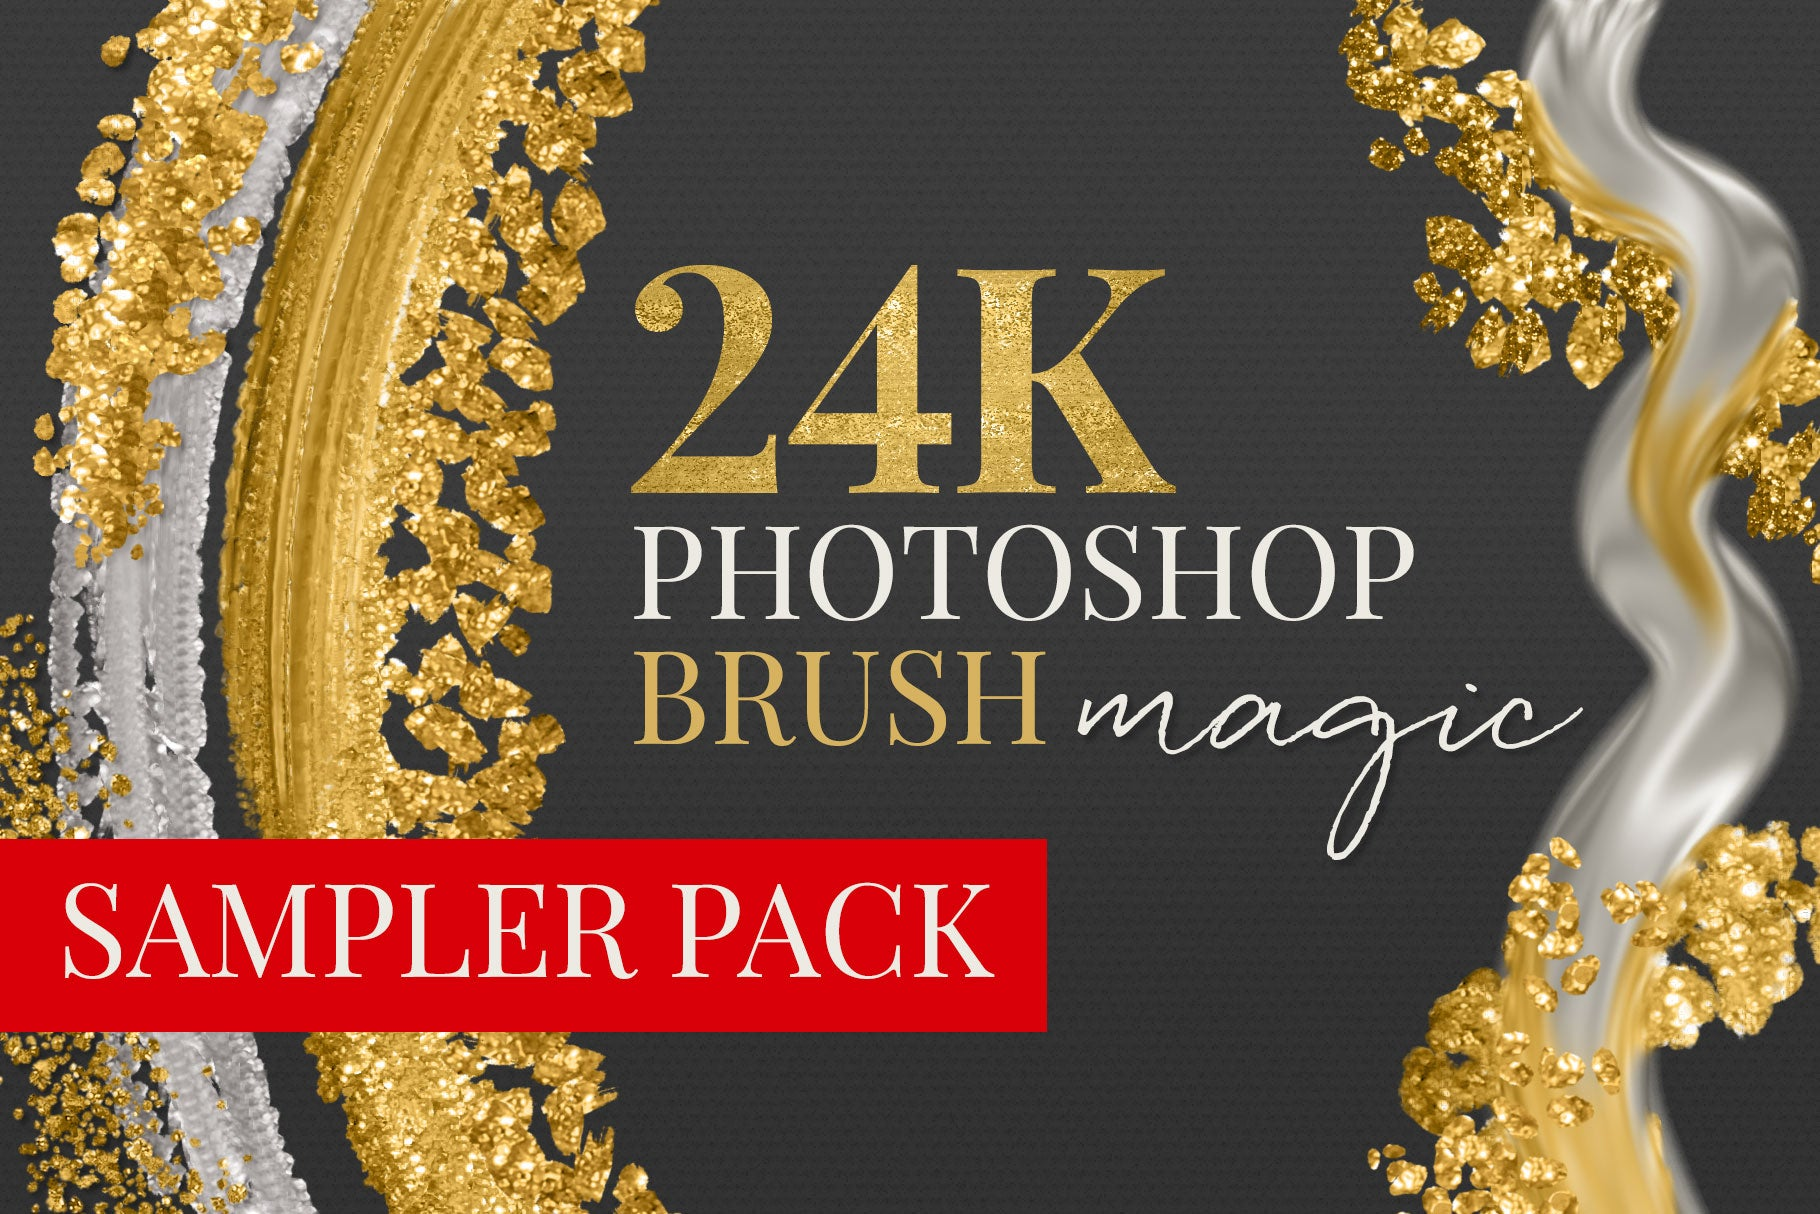 24k liquid, metallic gold photoshop brush preview cover image sampler